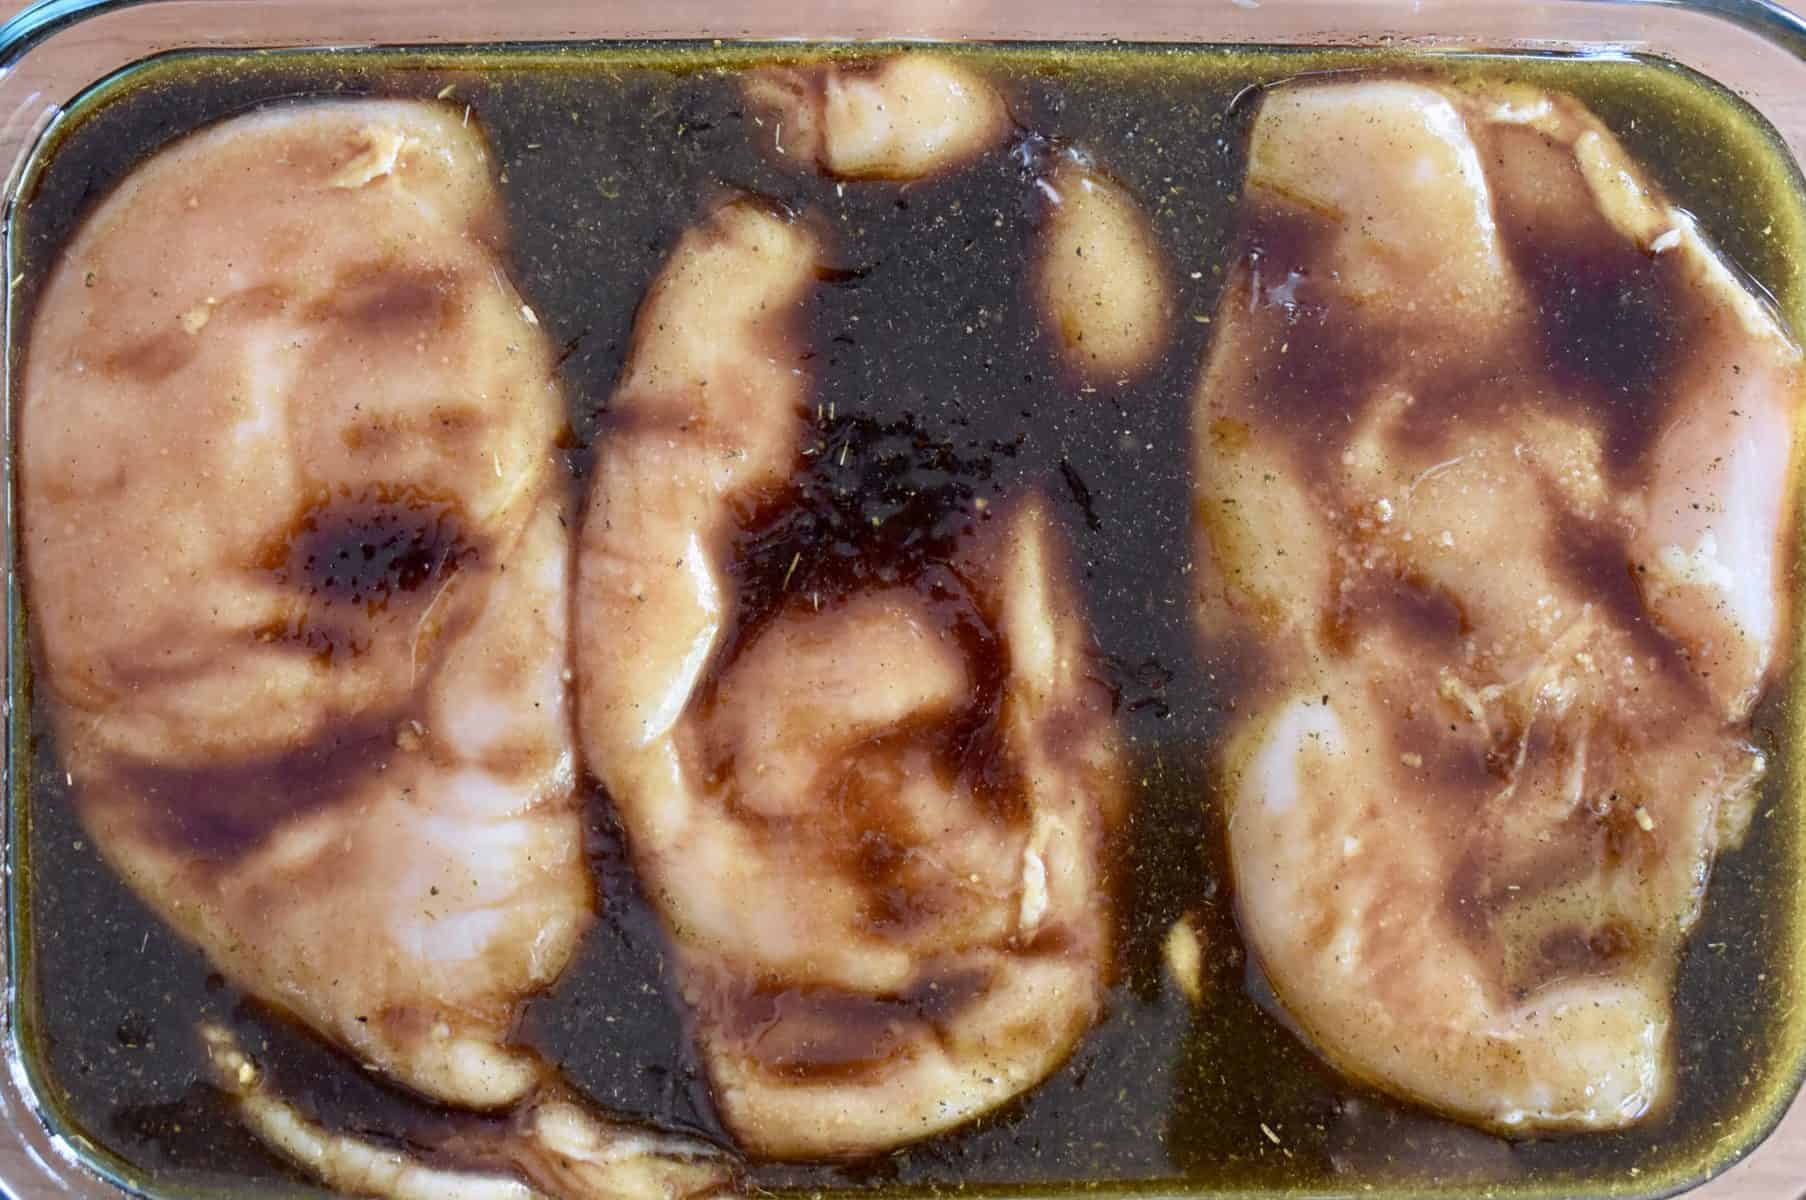 overhead photo of marinade poured over the chicken breasts.